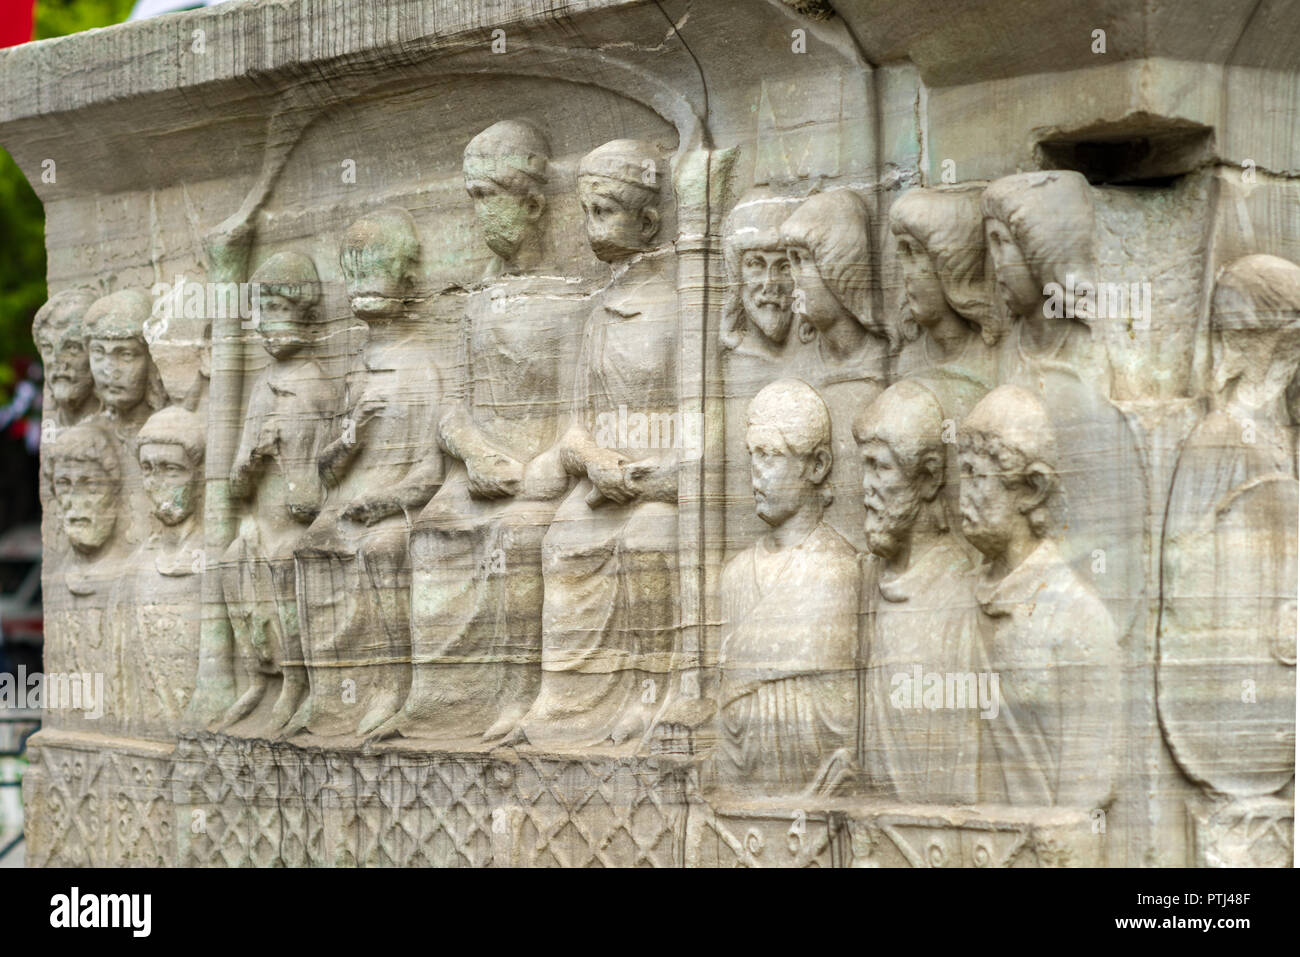 Detail of the pedestal of the Obelisk of Theodosius showing Submission of the barbarians on its West face, Istanbul, Turkey - Stock Image